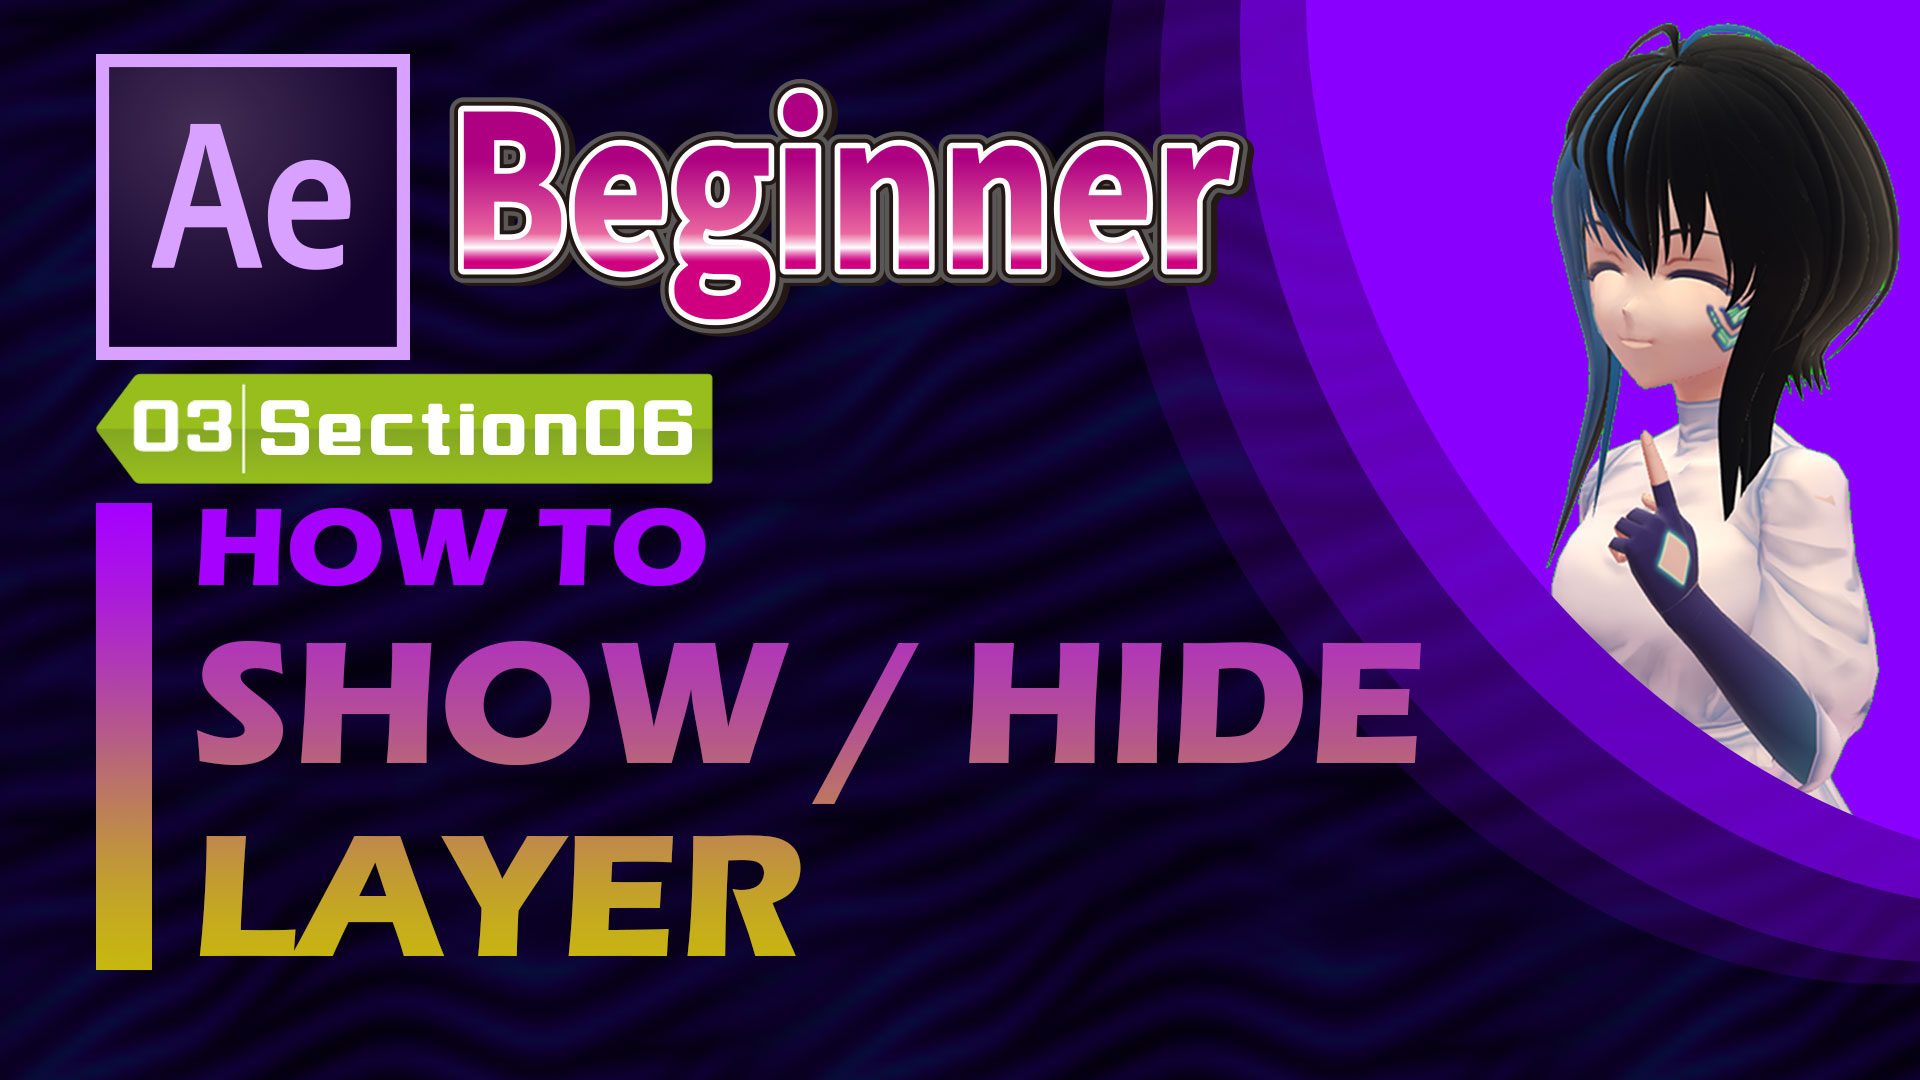 HOW TO SHOW / HIDE LAYER